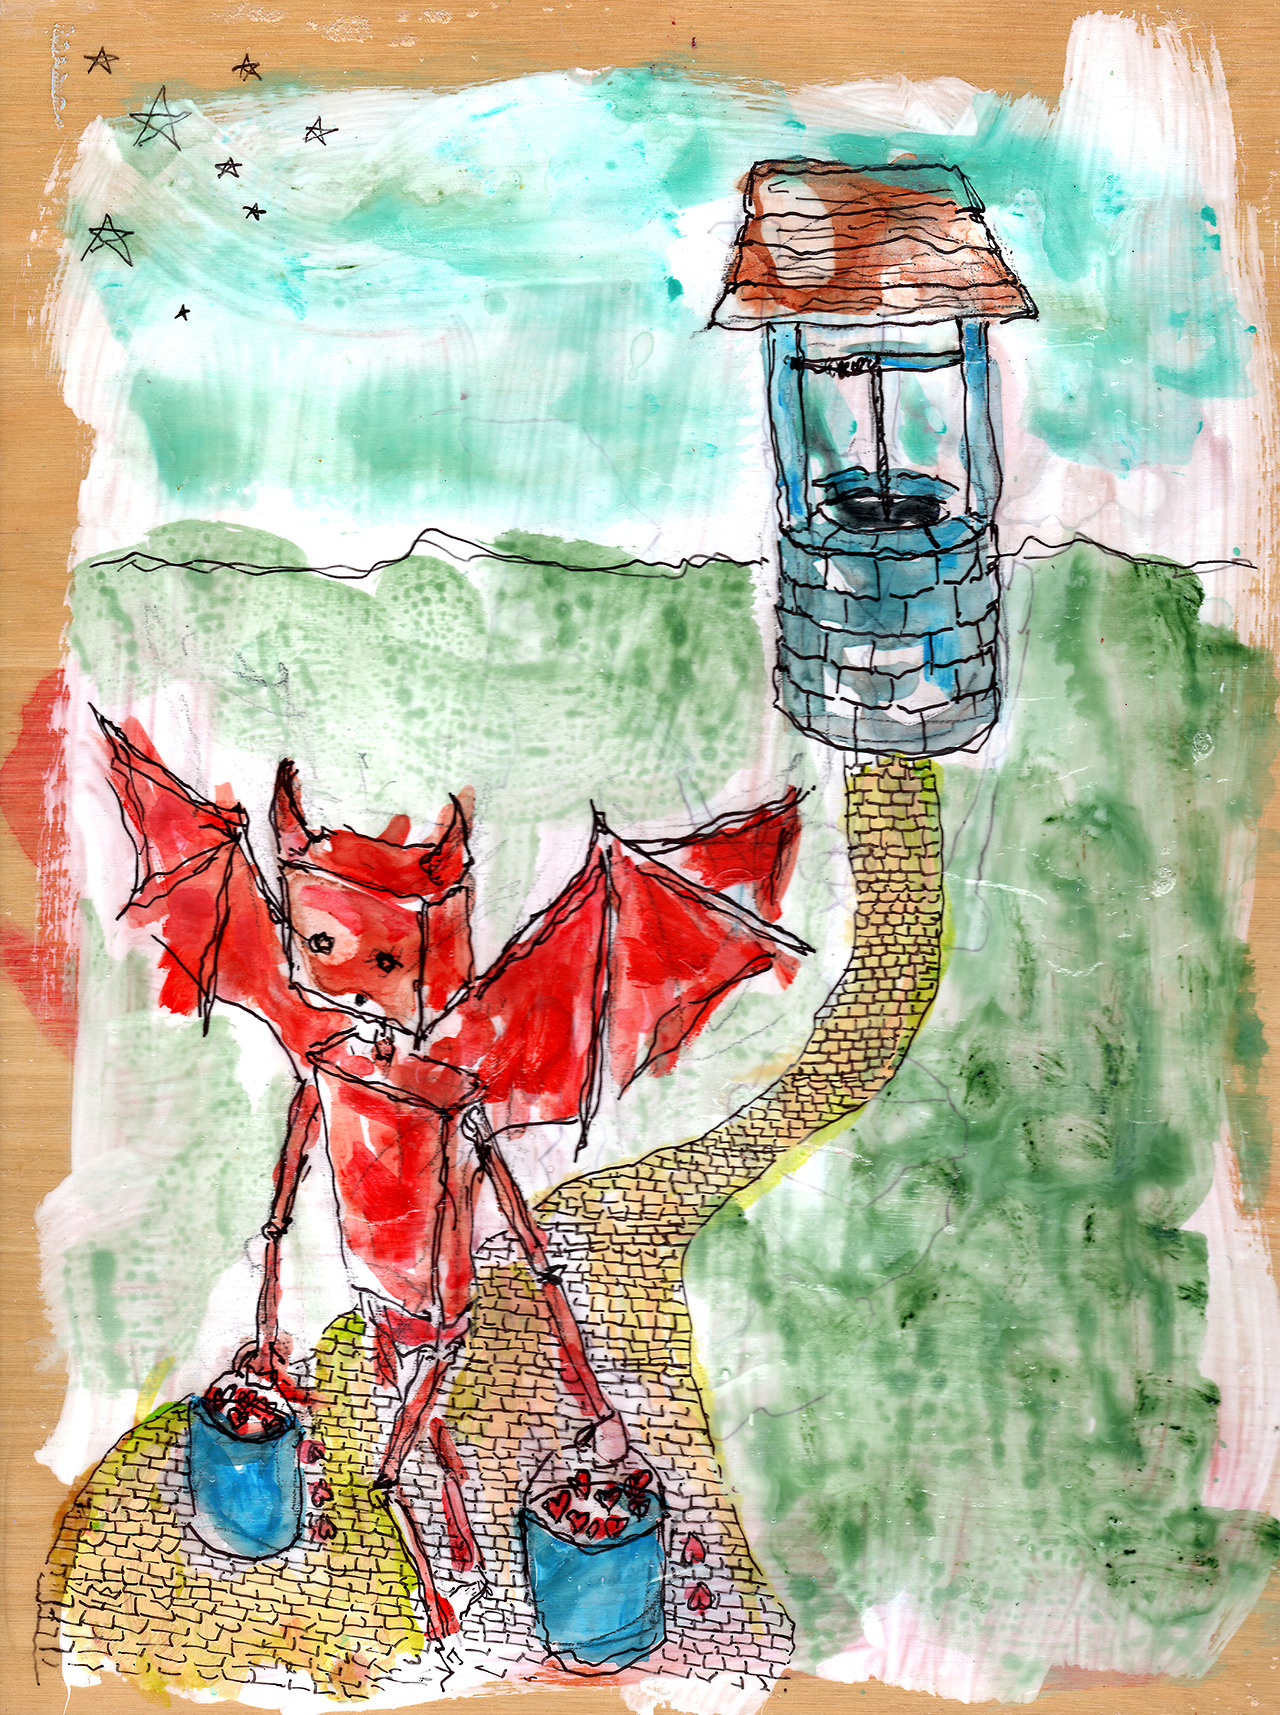 11/17/13 -  Devilbot Returns to a Familiar Well.    This is based on a really old sketch I came across today. Haven't painted good ole' Devilbot for a while. Figured it was about time.   Anyway, I've got about 13 days left to go on my kickstarter. If you're interested in owning a book containing all of my daily art pieces from this year please take a look! - http://www.kickstarter.com/projects/taylorwinder/the-art-book-of-the-year